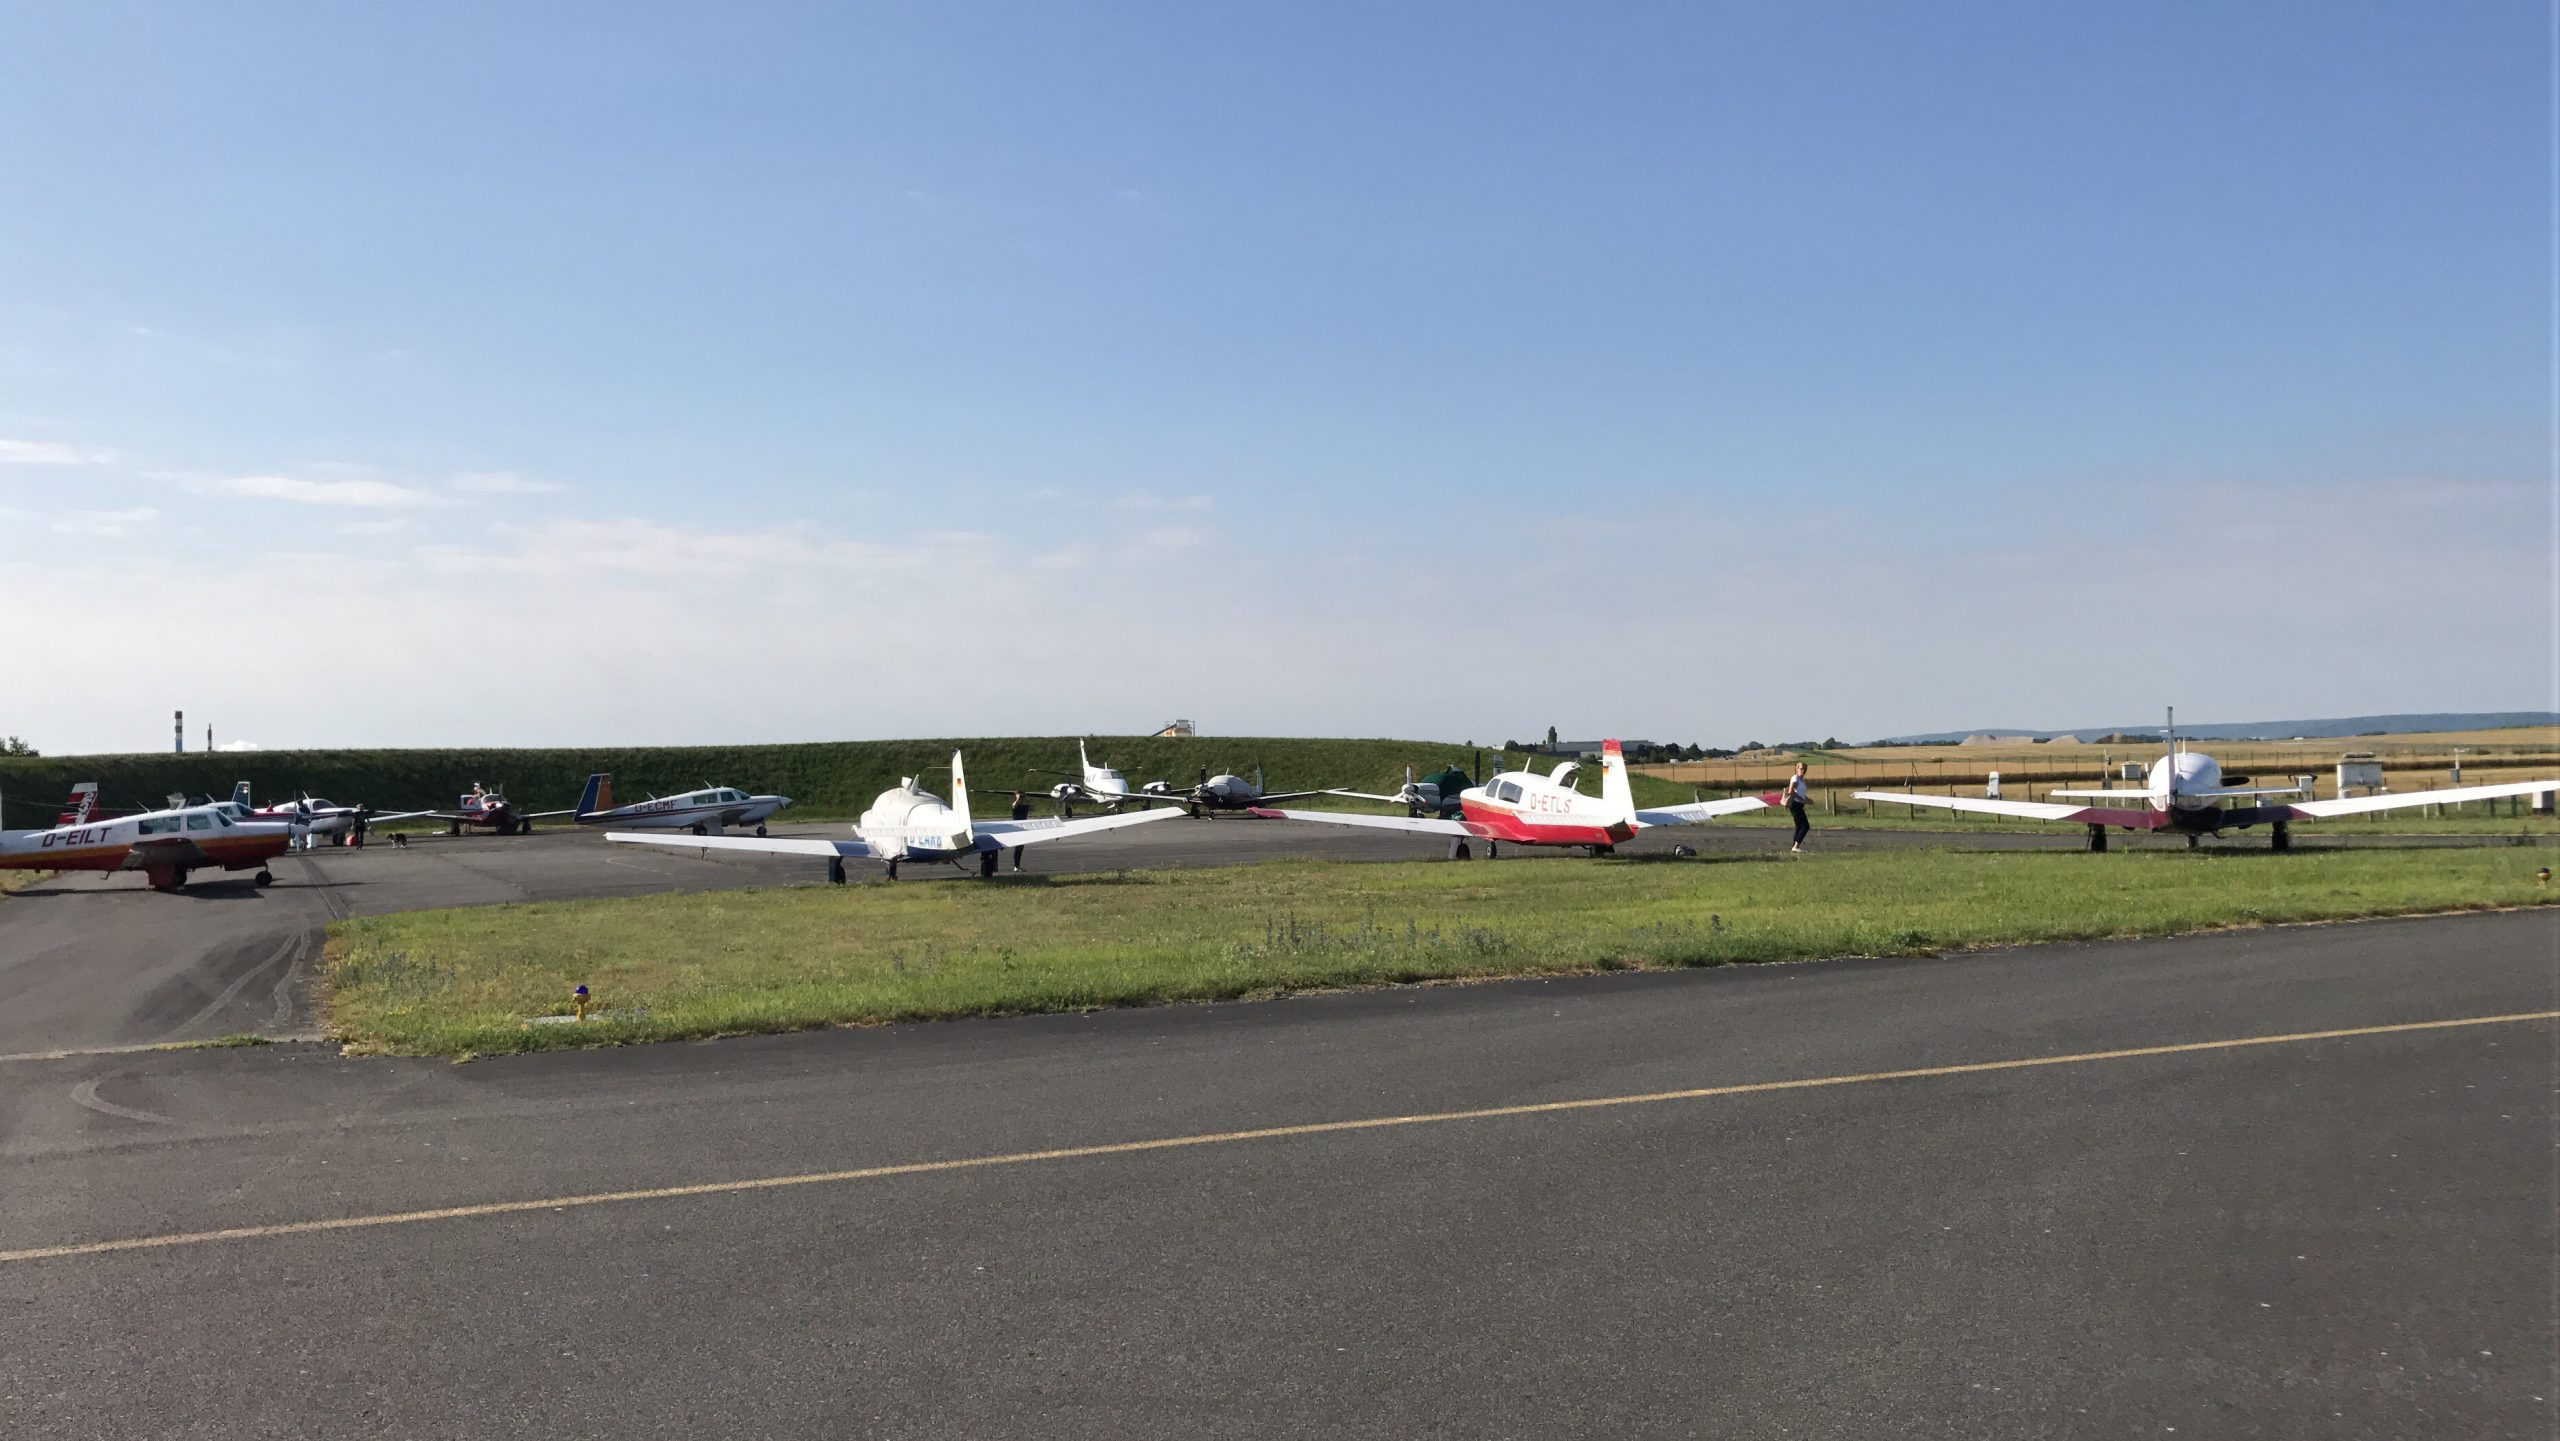 EMPOA - European Mooney Owners and Pilots Association